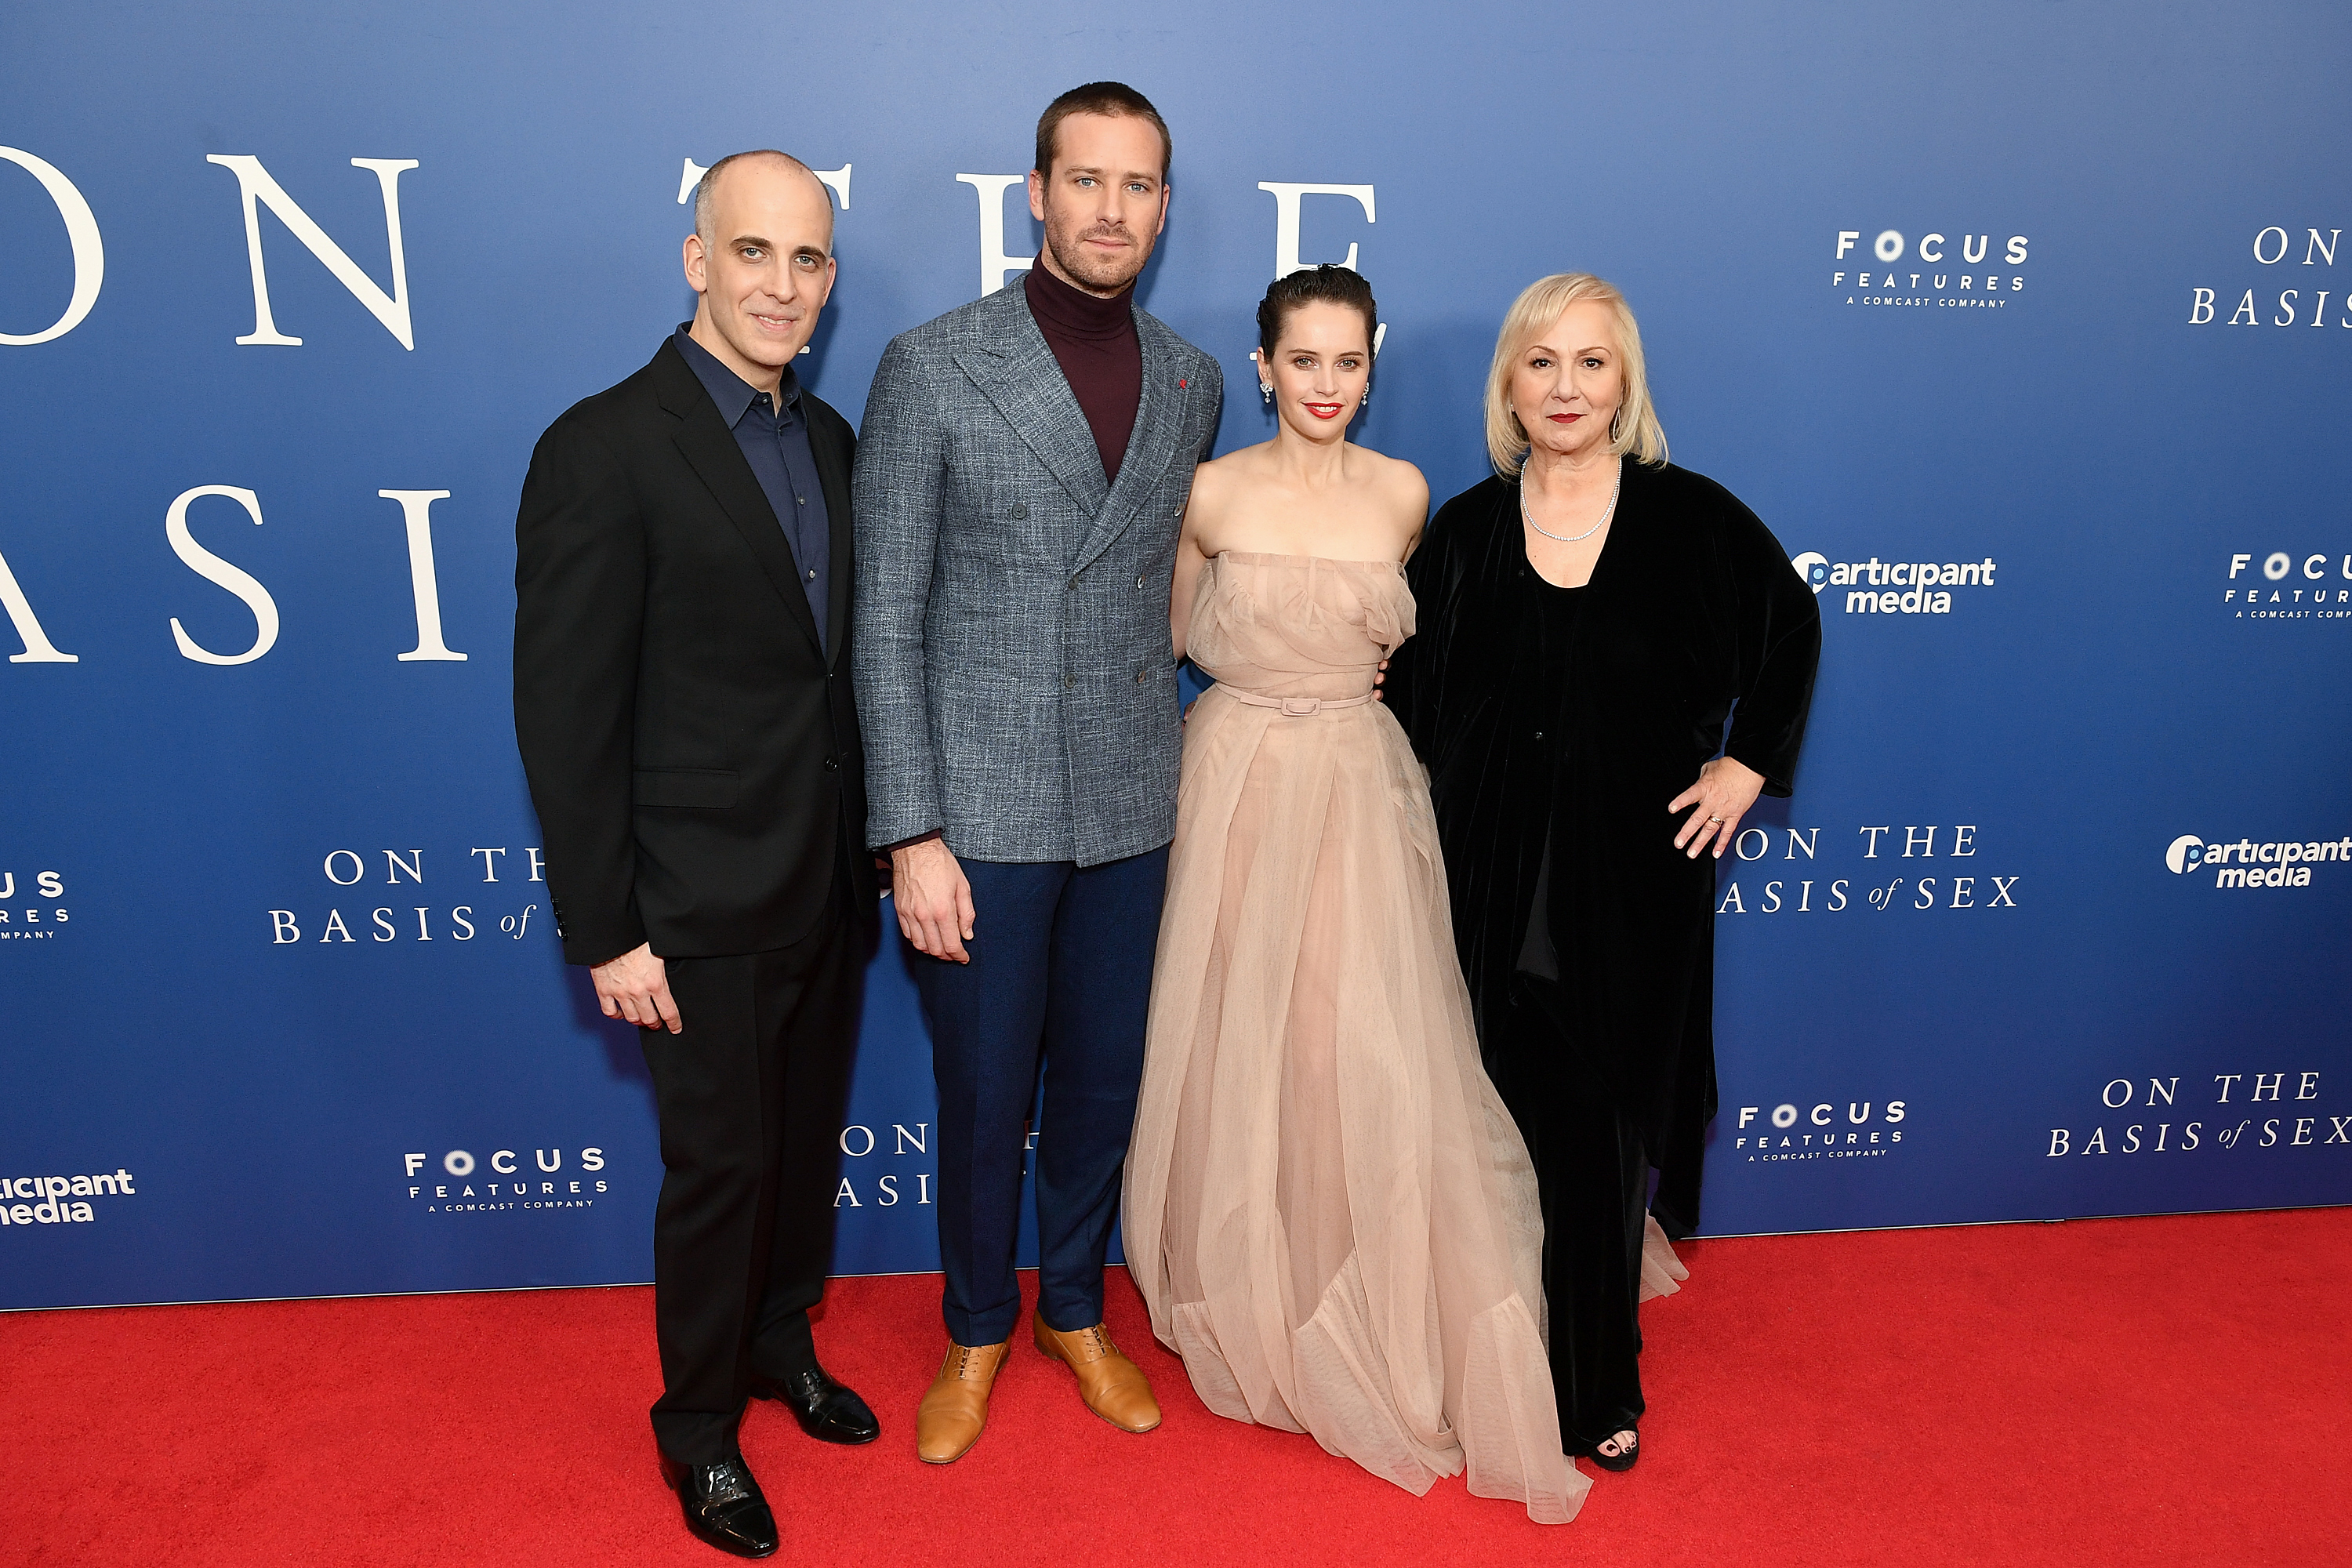 """(L-R) Writer Daniel Stiepleman, Armie Hammer, Felicity Jones, and director Mimi Leder attend a screening of """"On the Basis of Sex"""" at Walter Reade Theater in New York City on December 16, 2018. (Dia Dipasupil/Getty Images)"""